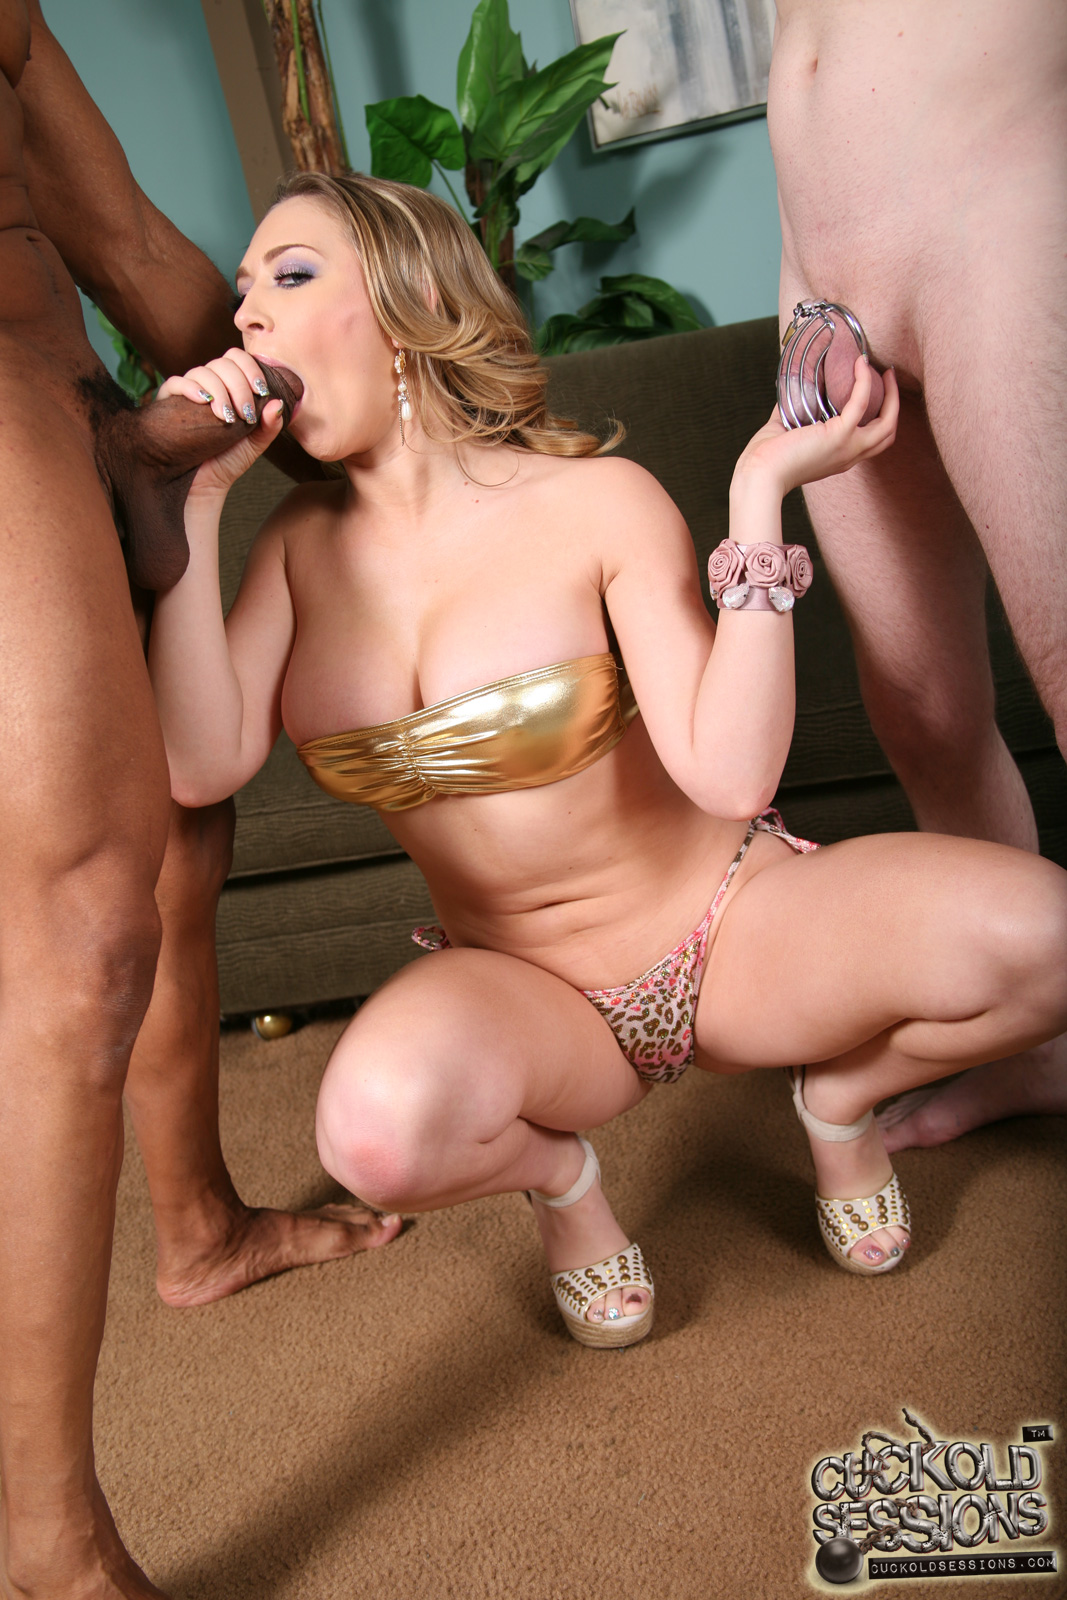 march | 2012 | cuckold sessions official blog